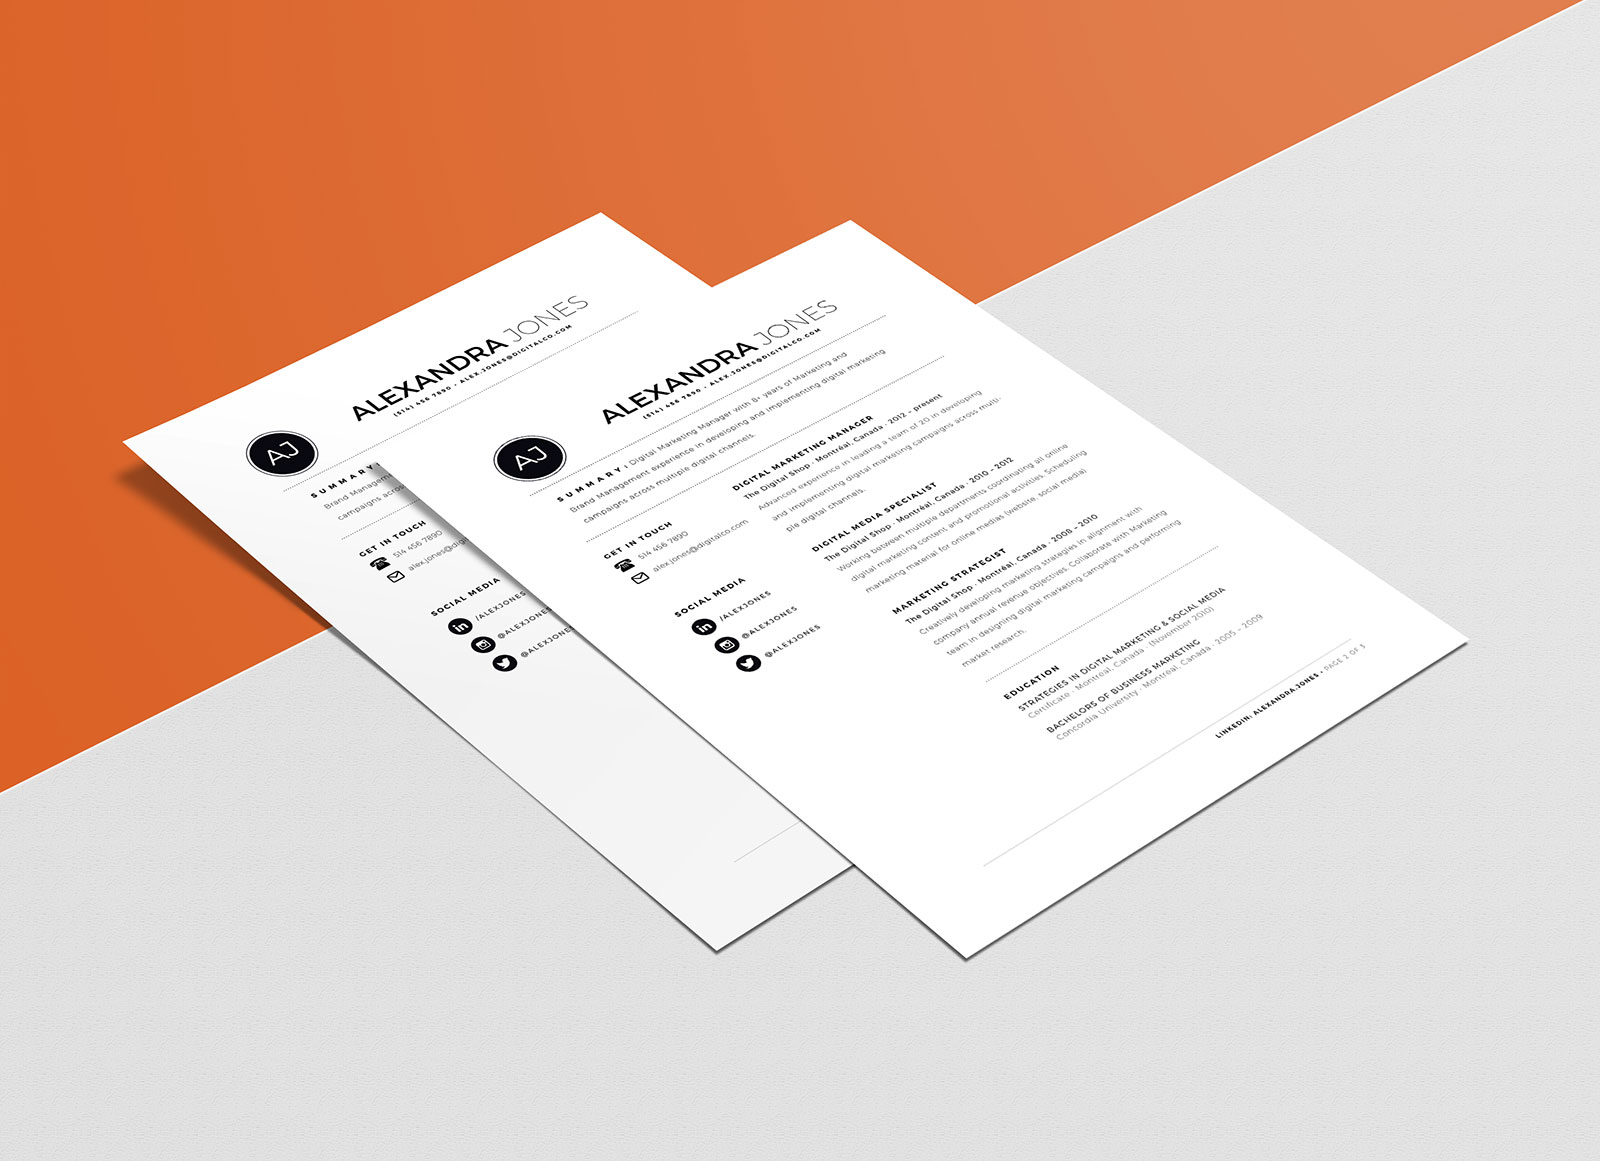 Free-Minimalistic-Resume-Template-in-INDD,-Ai-&-Word-Format-2